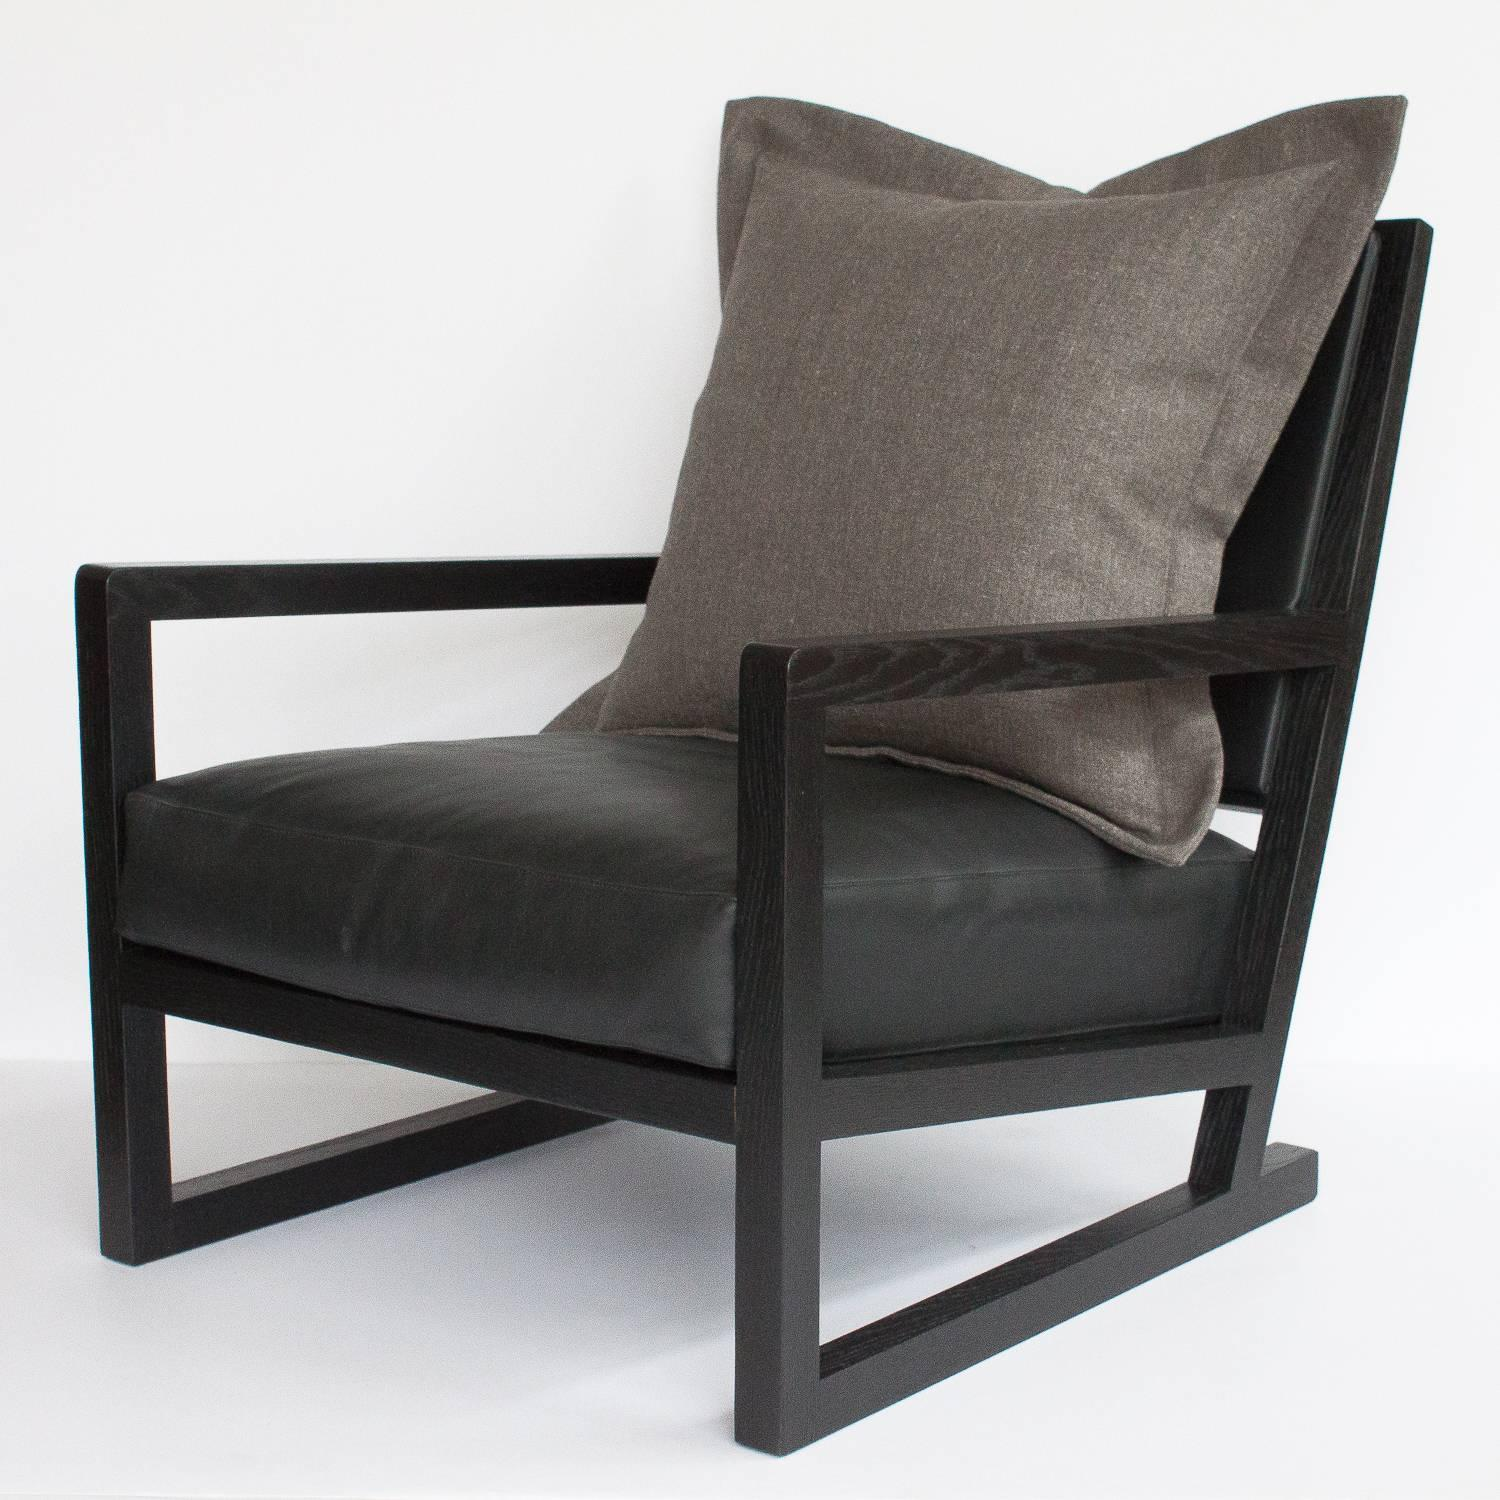 antonio citterio clio lounge chair for b b italia. Black Bedroom Furniture Sets. Home Design Ideas